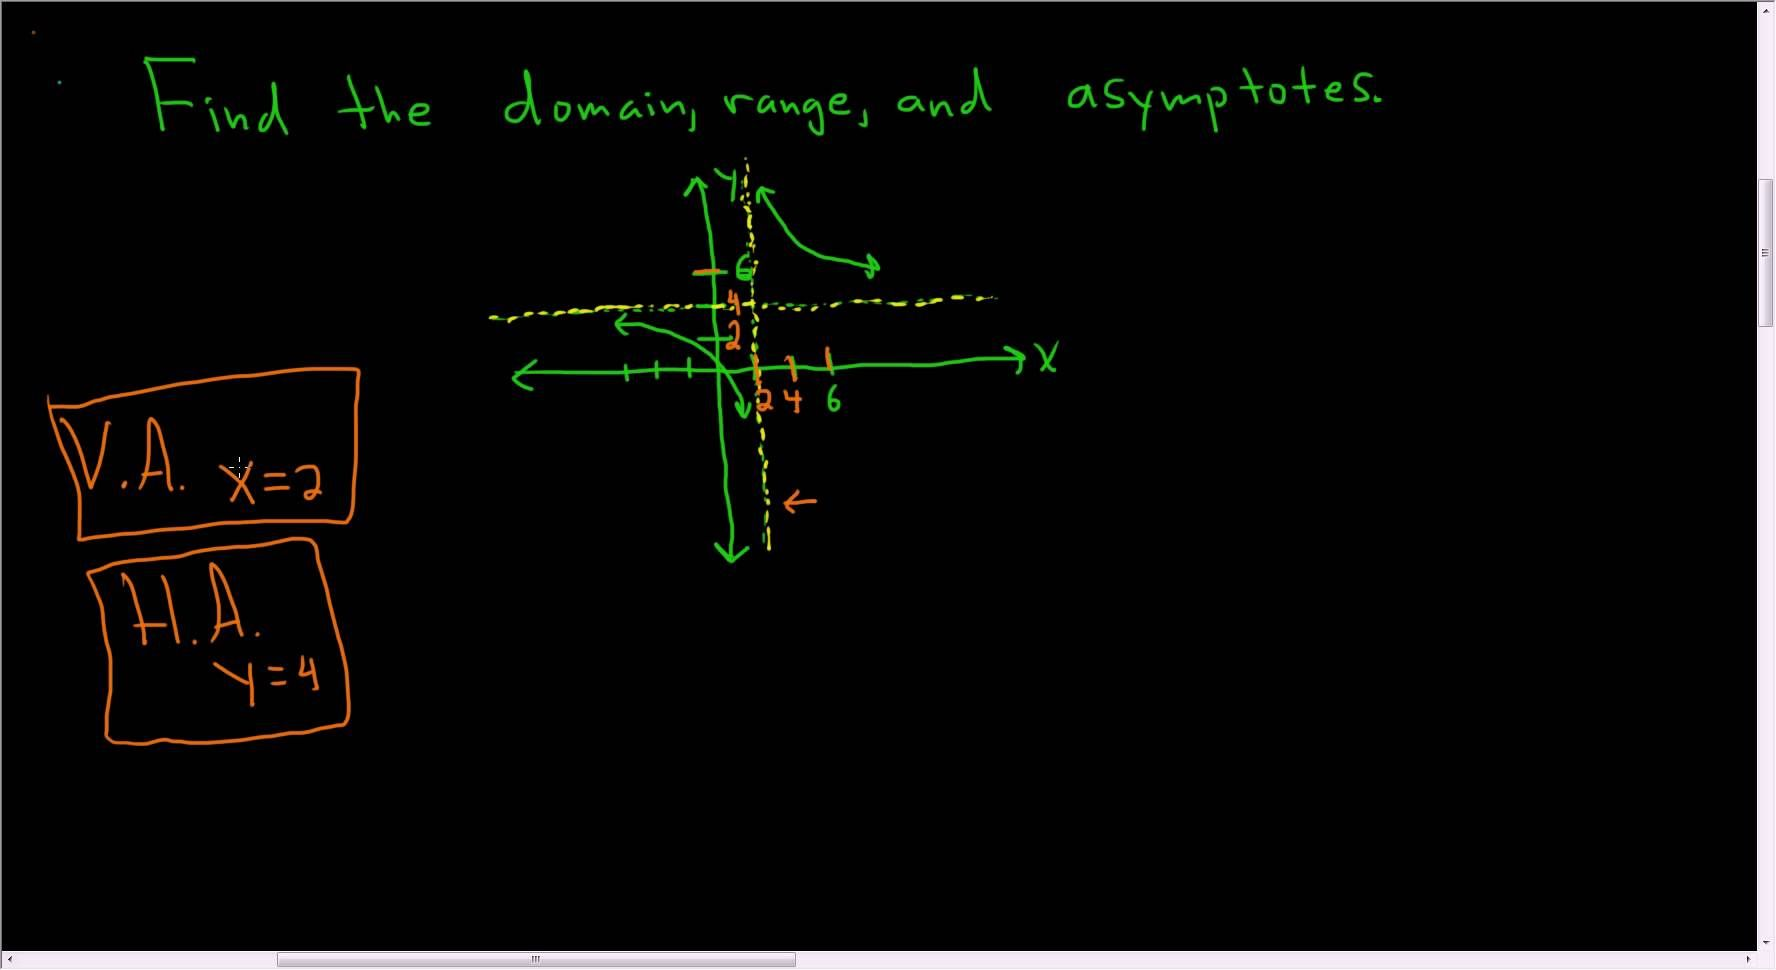 Finding the domain range and asymptotes from a graph